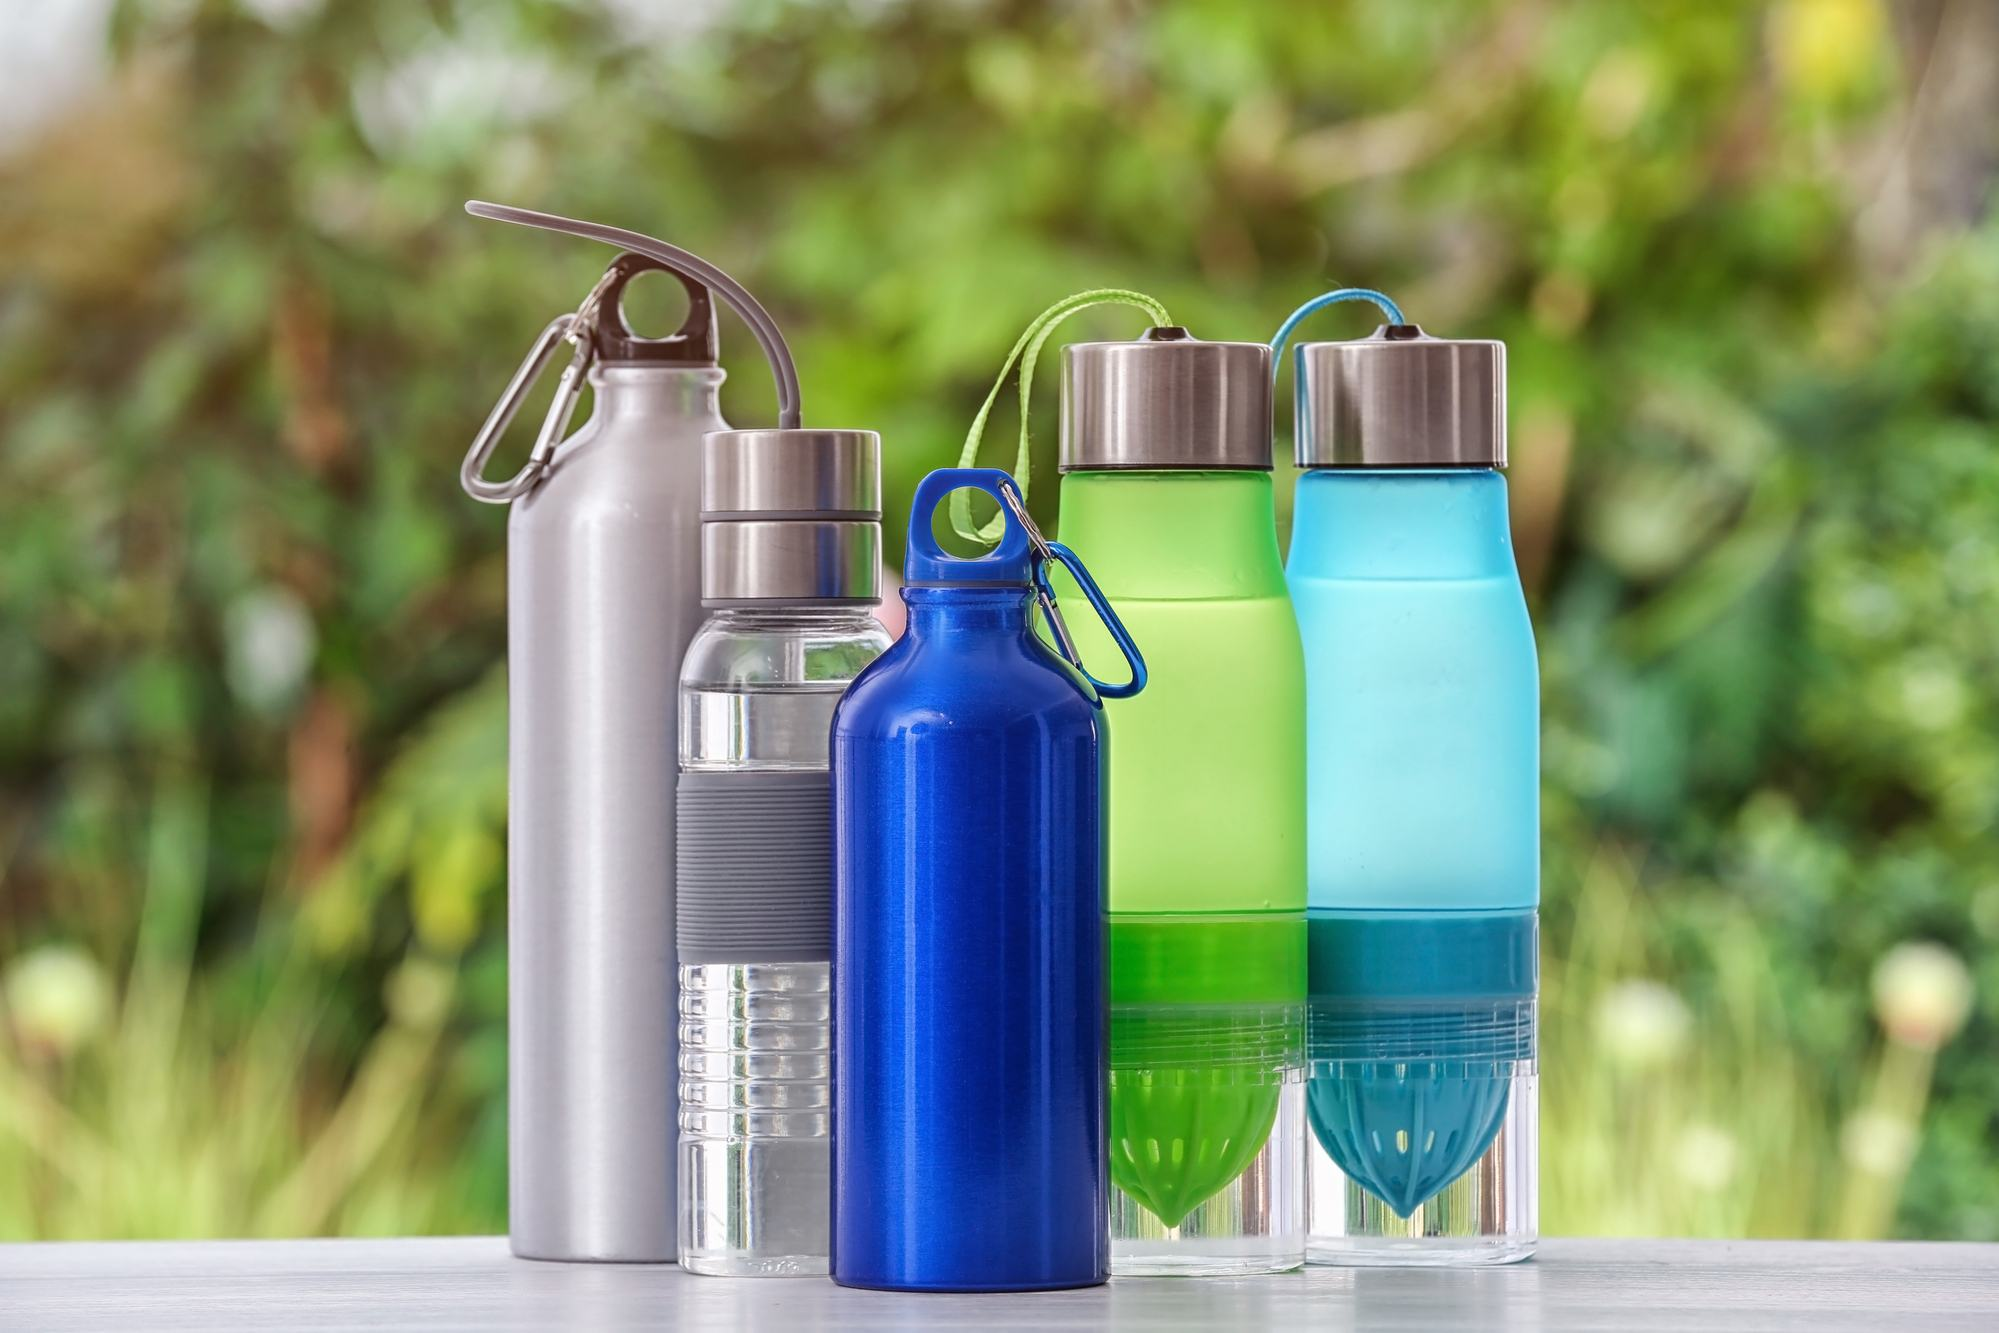 Water bottles are essential for staying hydrated when camping